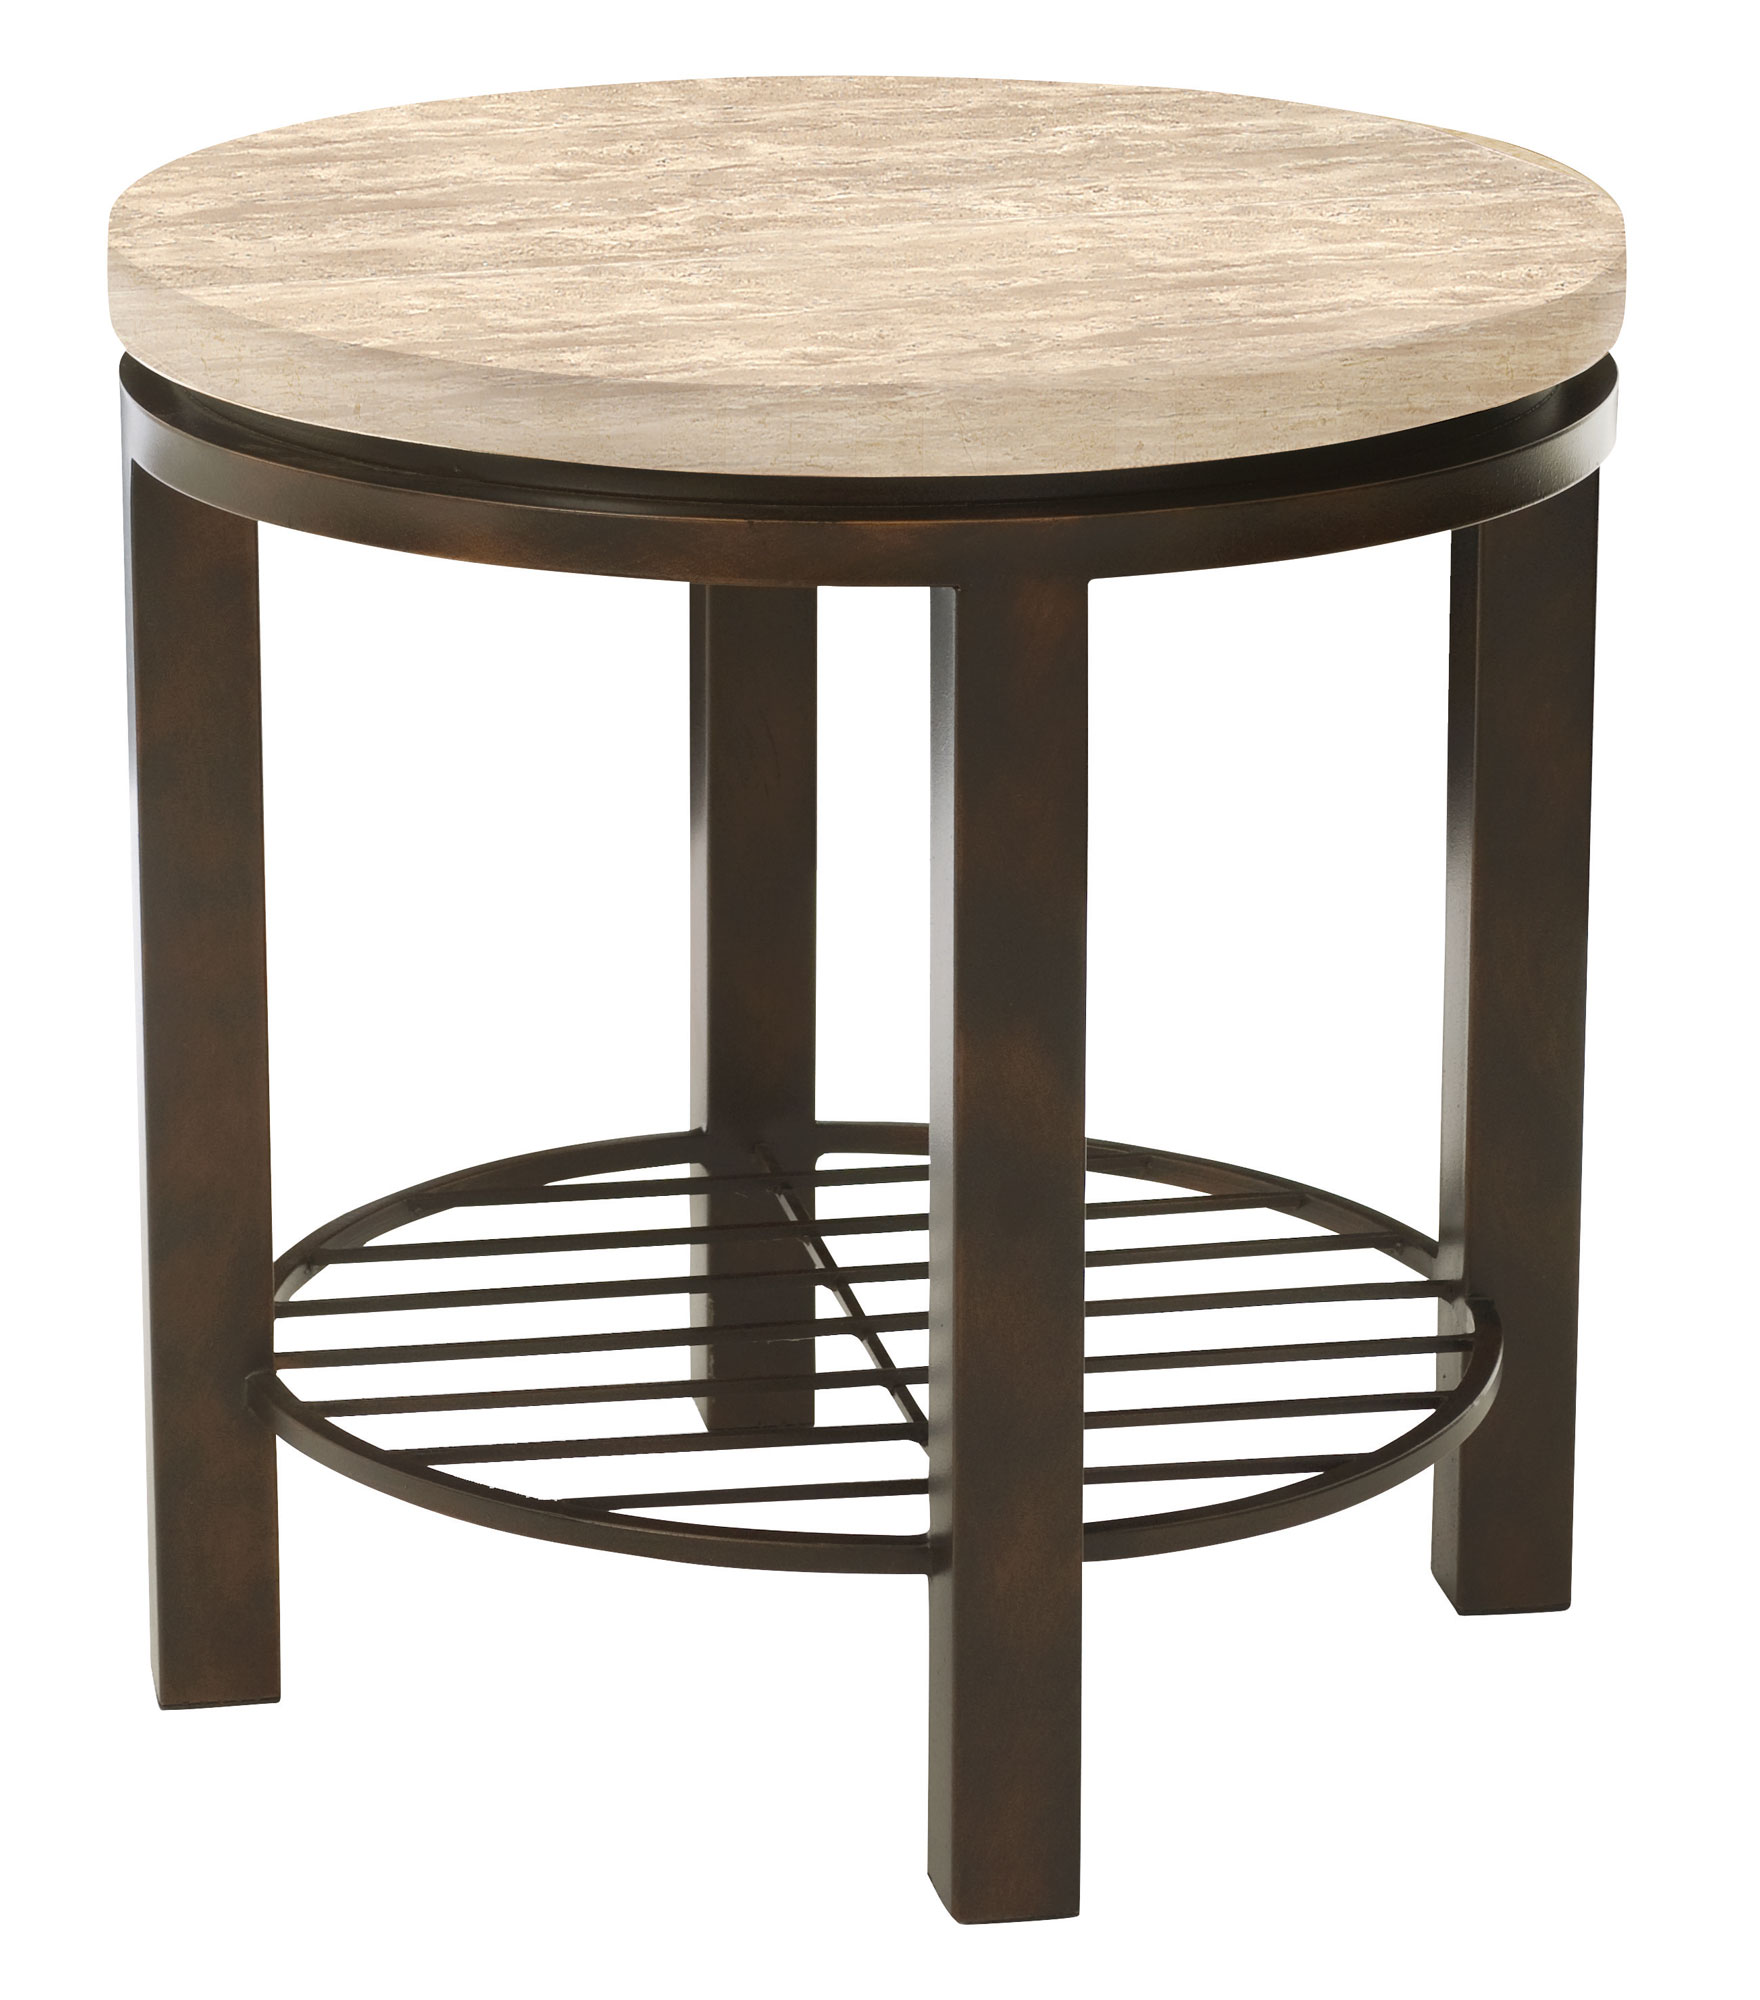 Macy S Marble Top Coffee Table: Round End Table